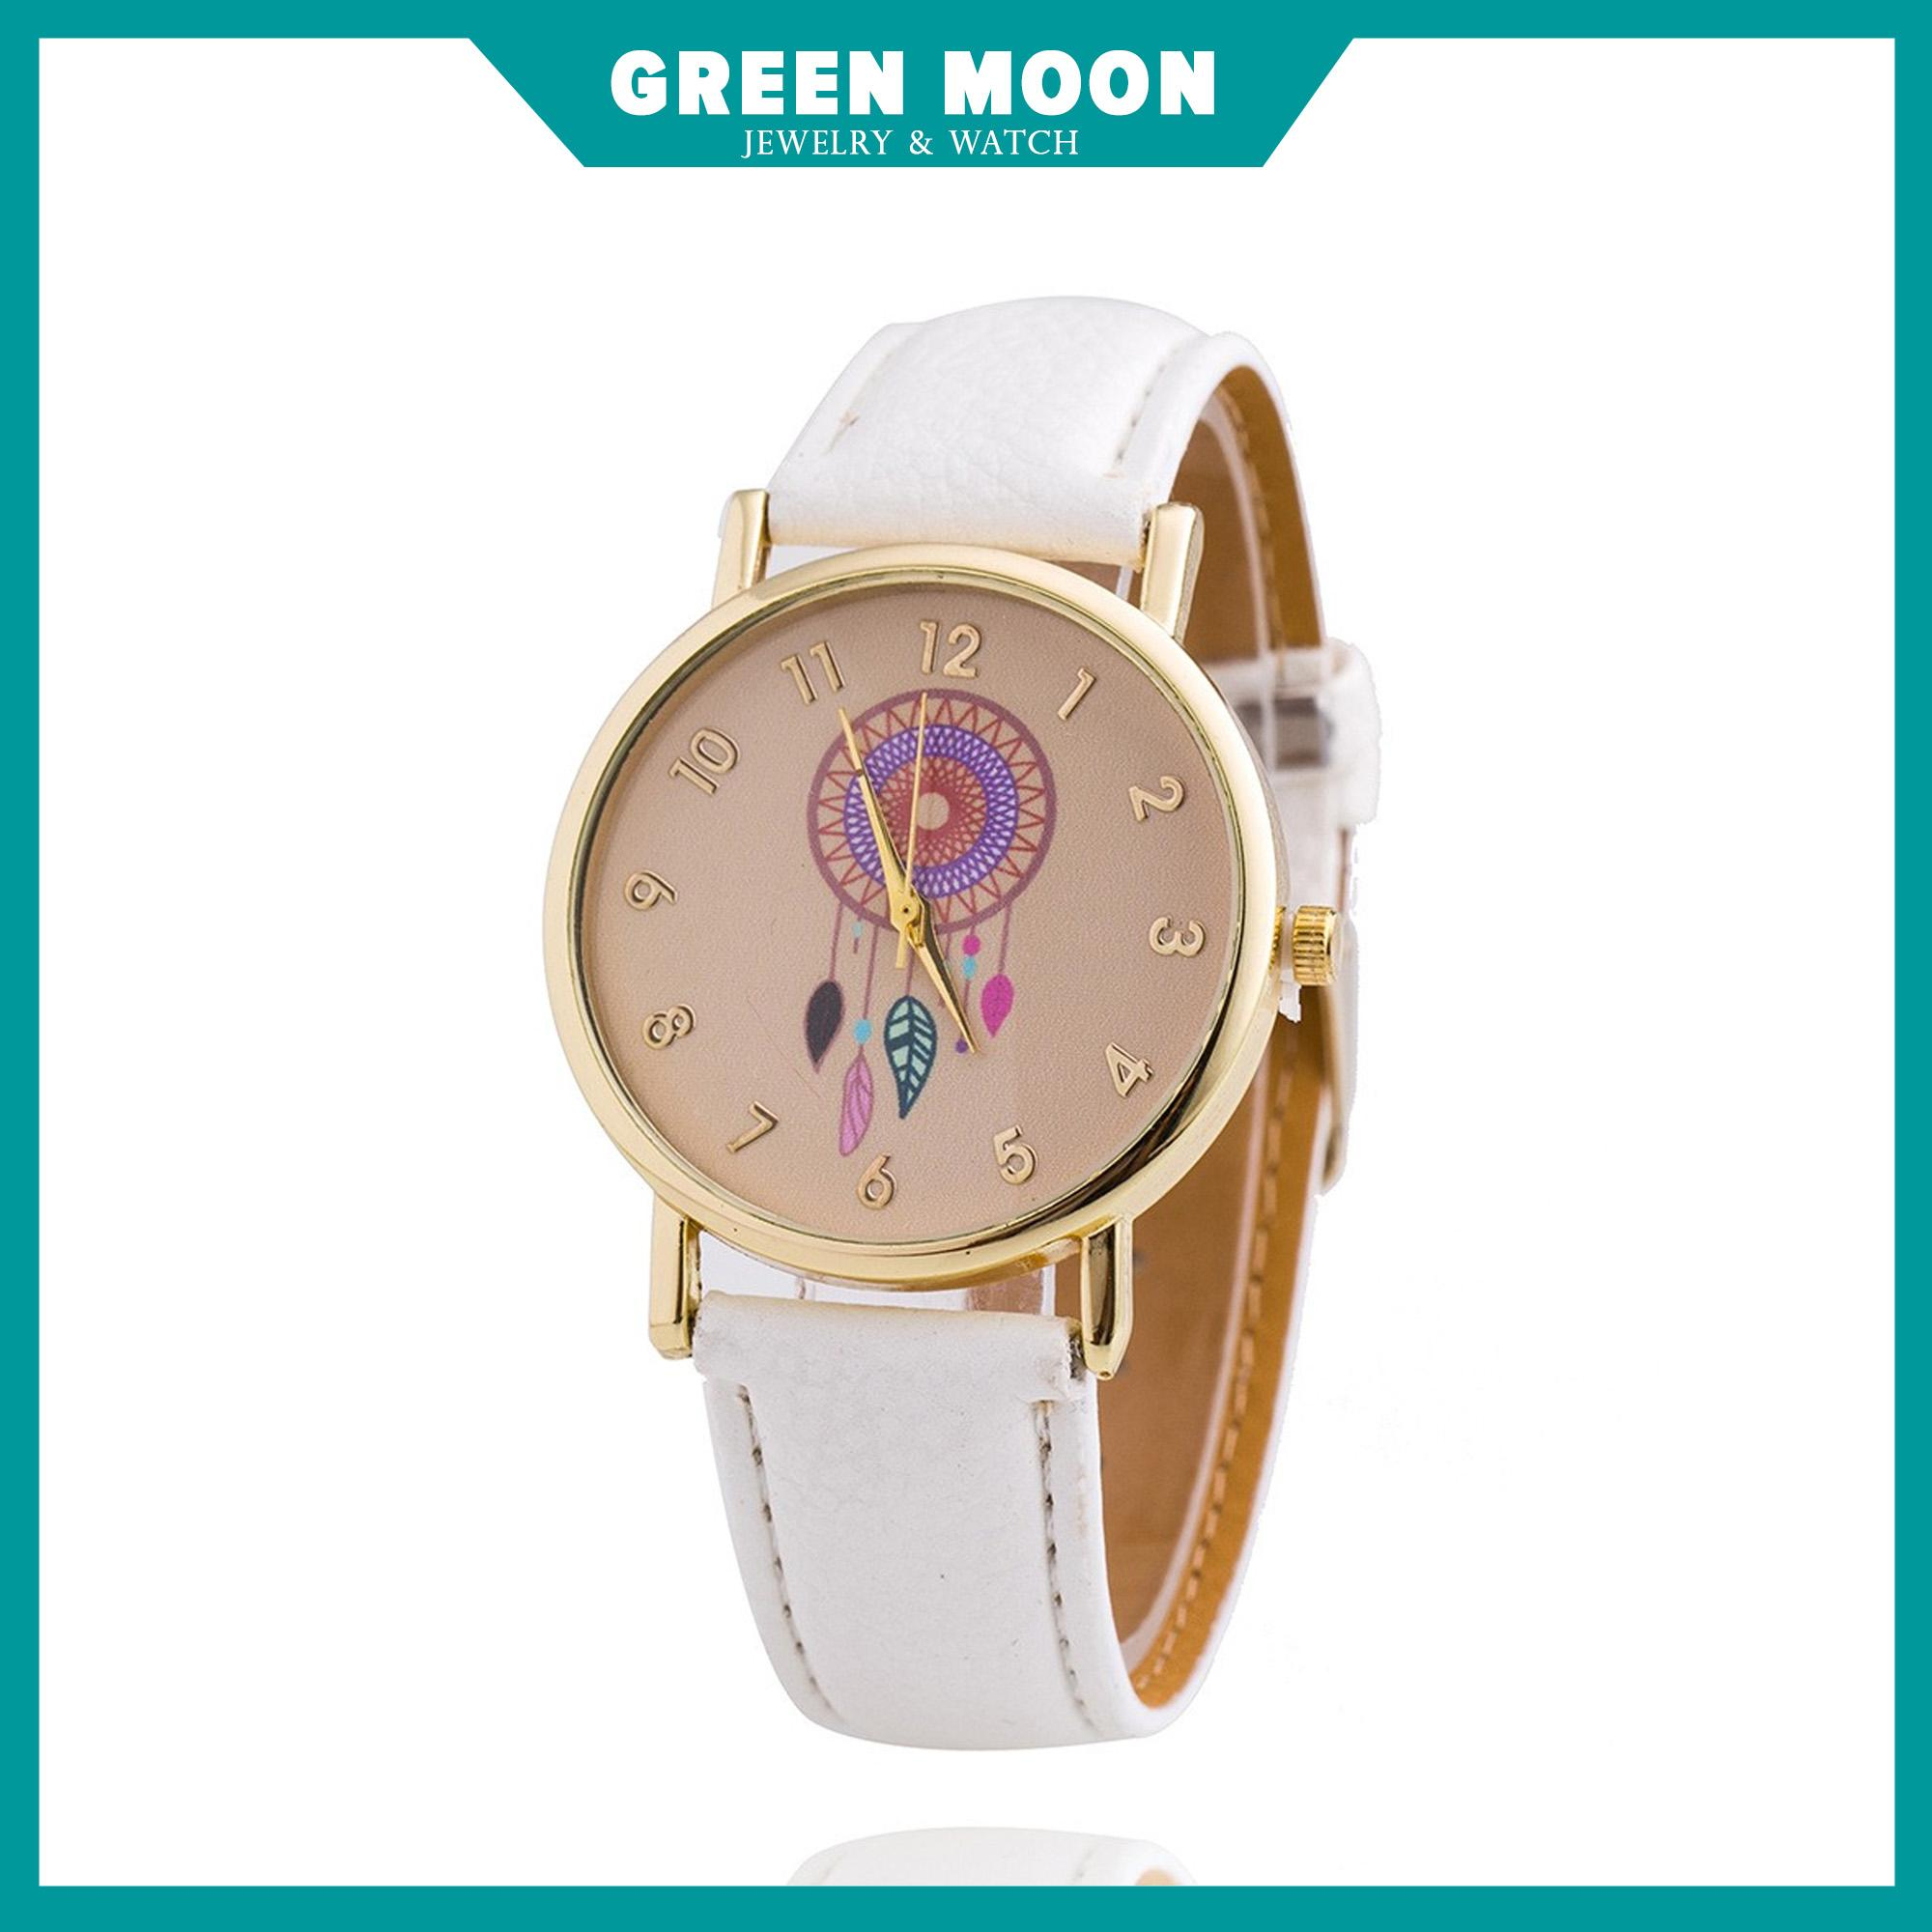 bc0f9103ad2 Watch Accessories For Women for sale - Womens Watch Accessories Online  Deals & Prices in Philippines   Lazada.com.ph